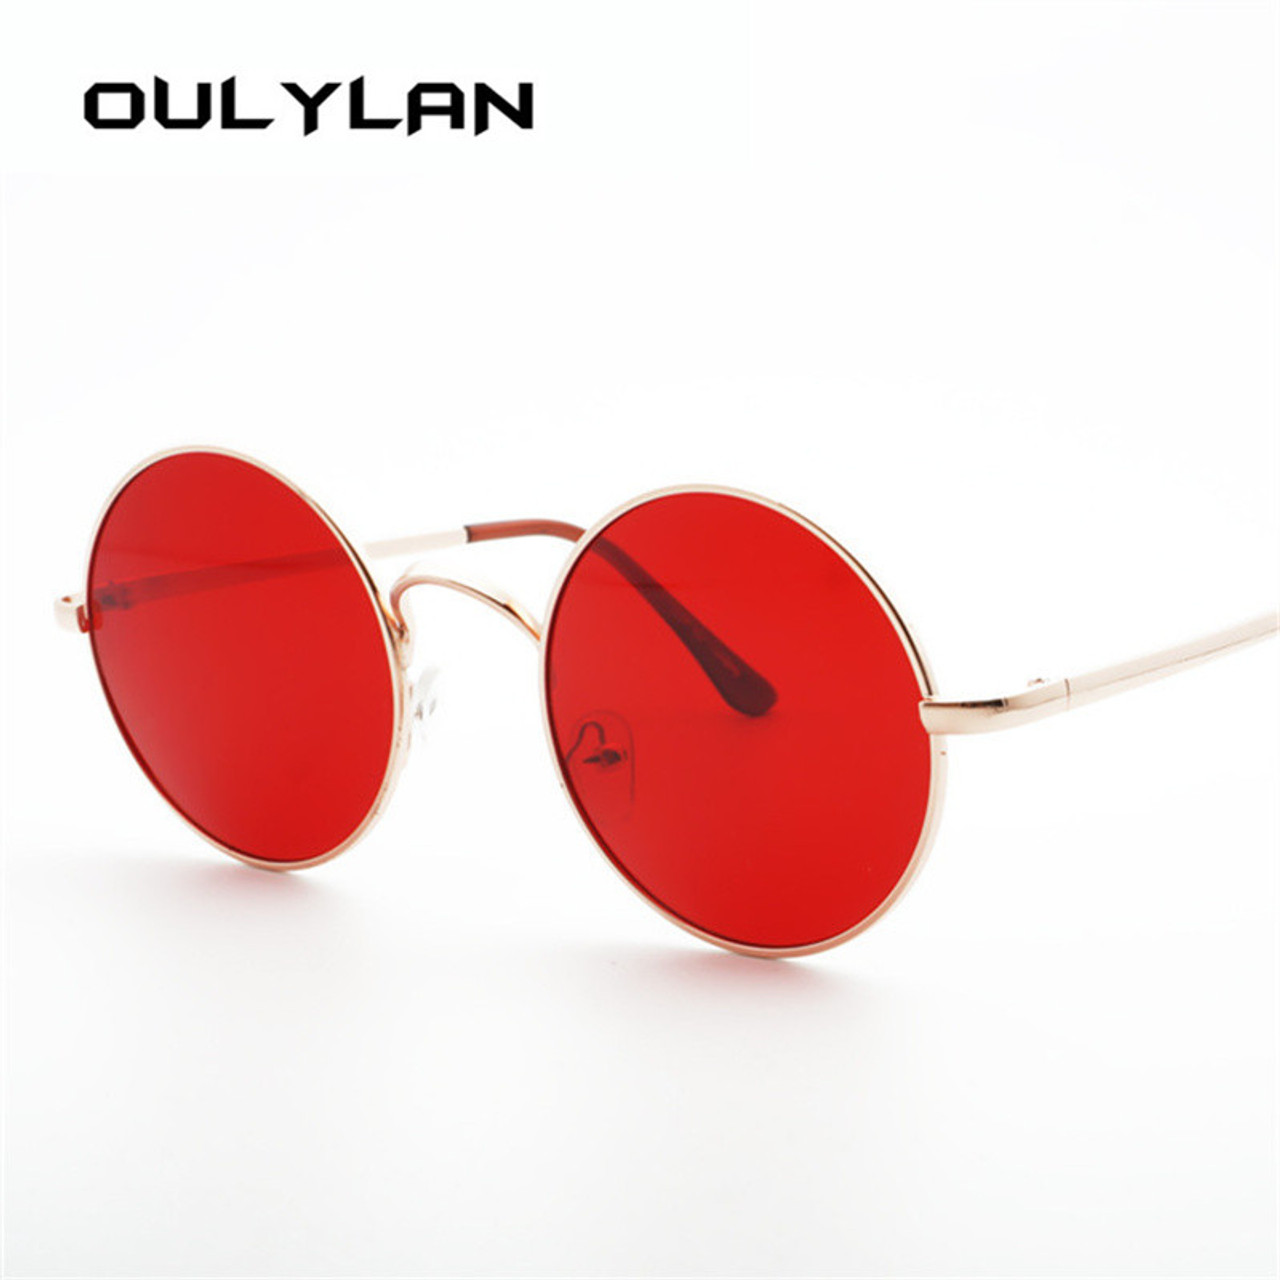 d60838dca4a8 Oulylan Retro Round Sunglasses Men Women Brand Designer Red Sun glasses  Female Vintage Metal Big Sunglasses ...